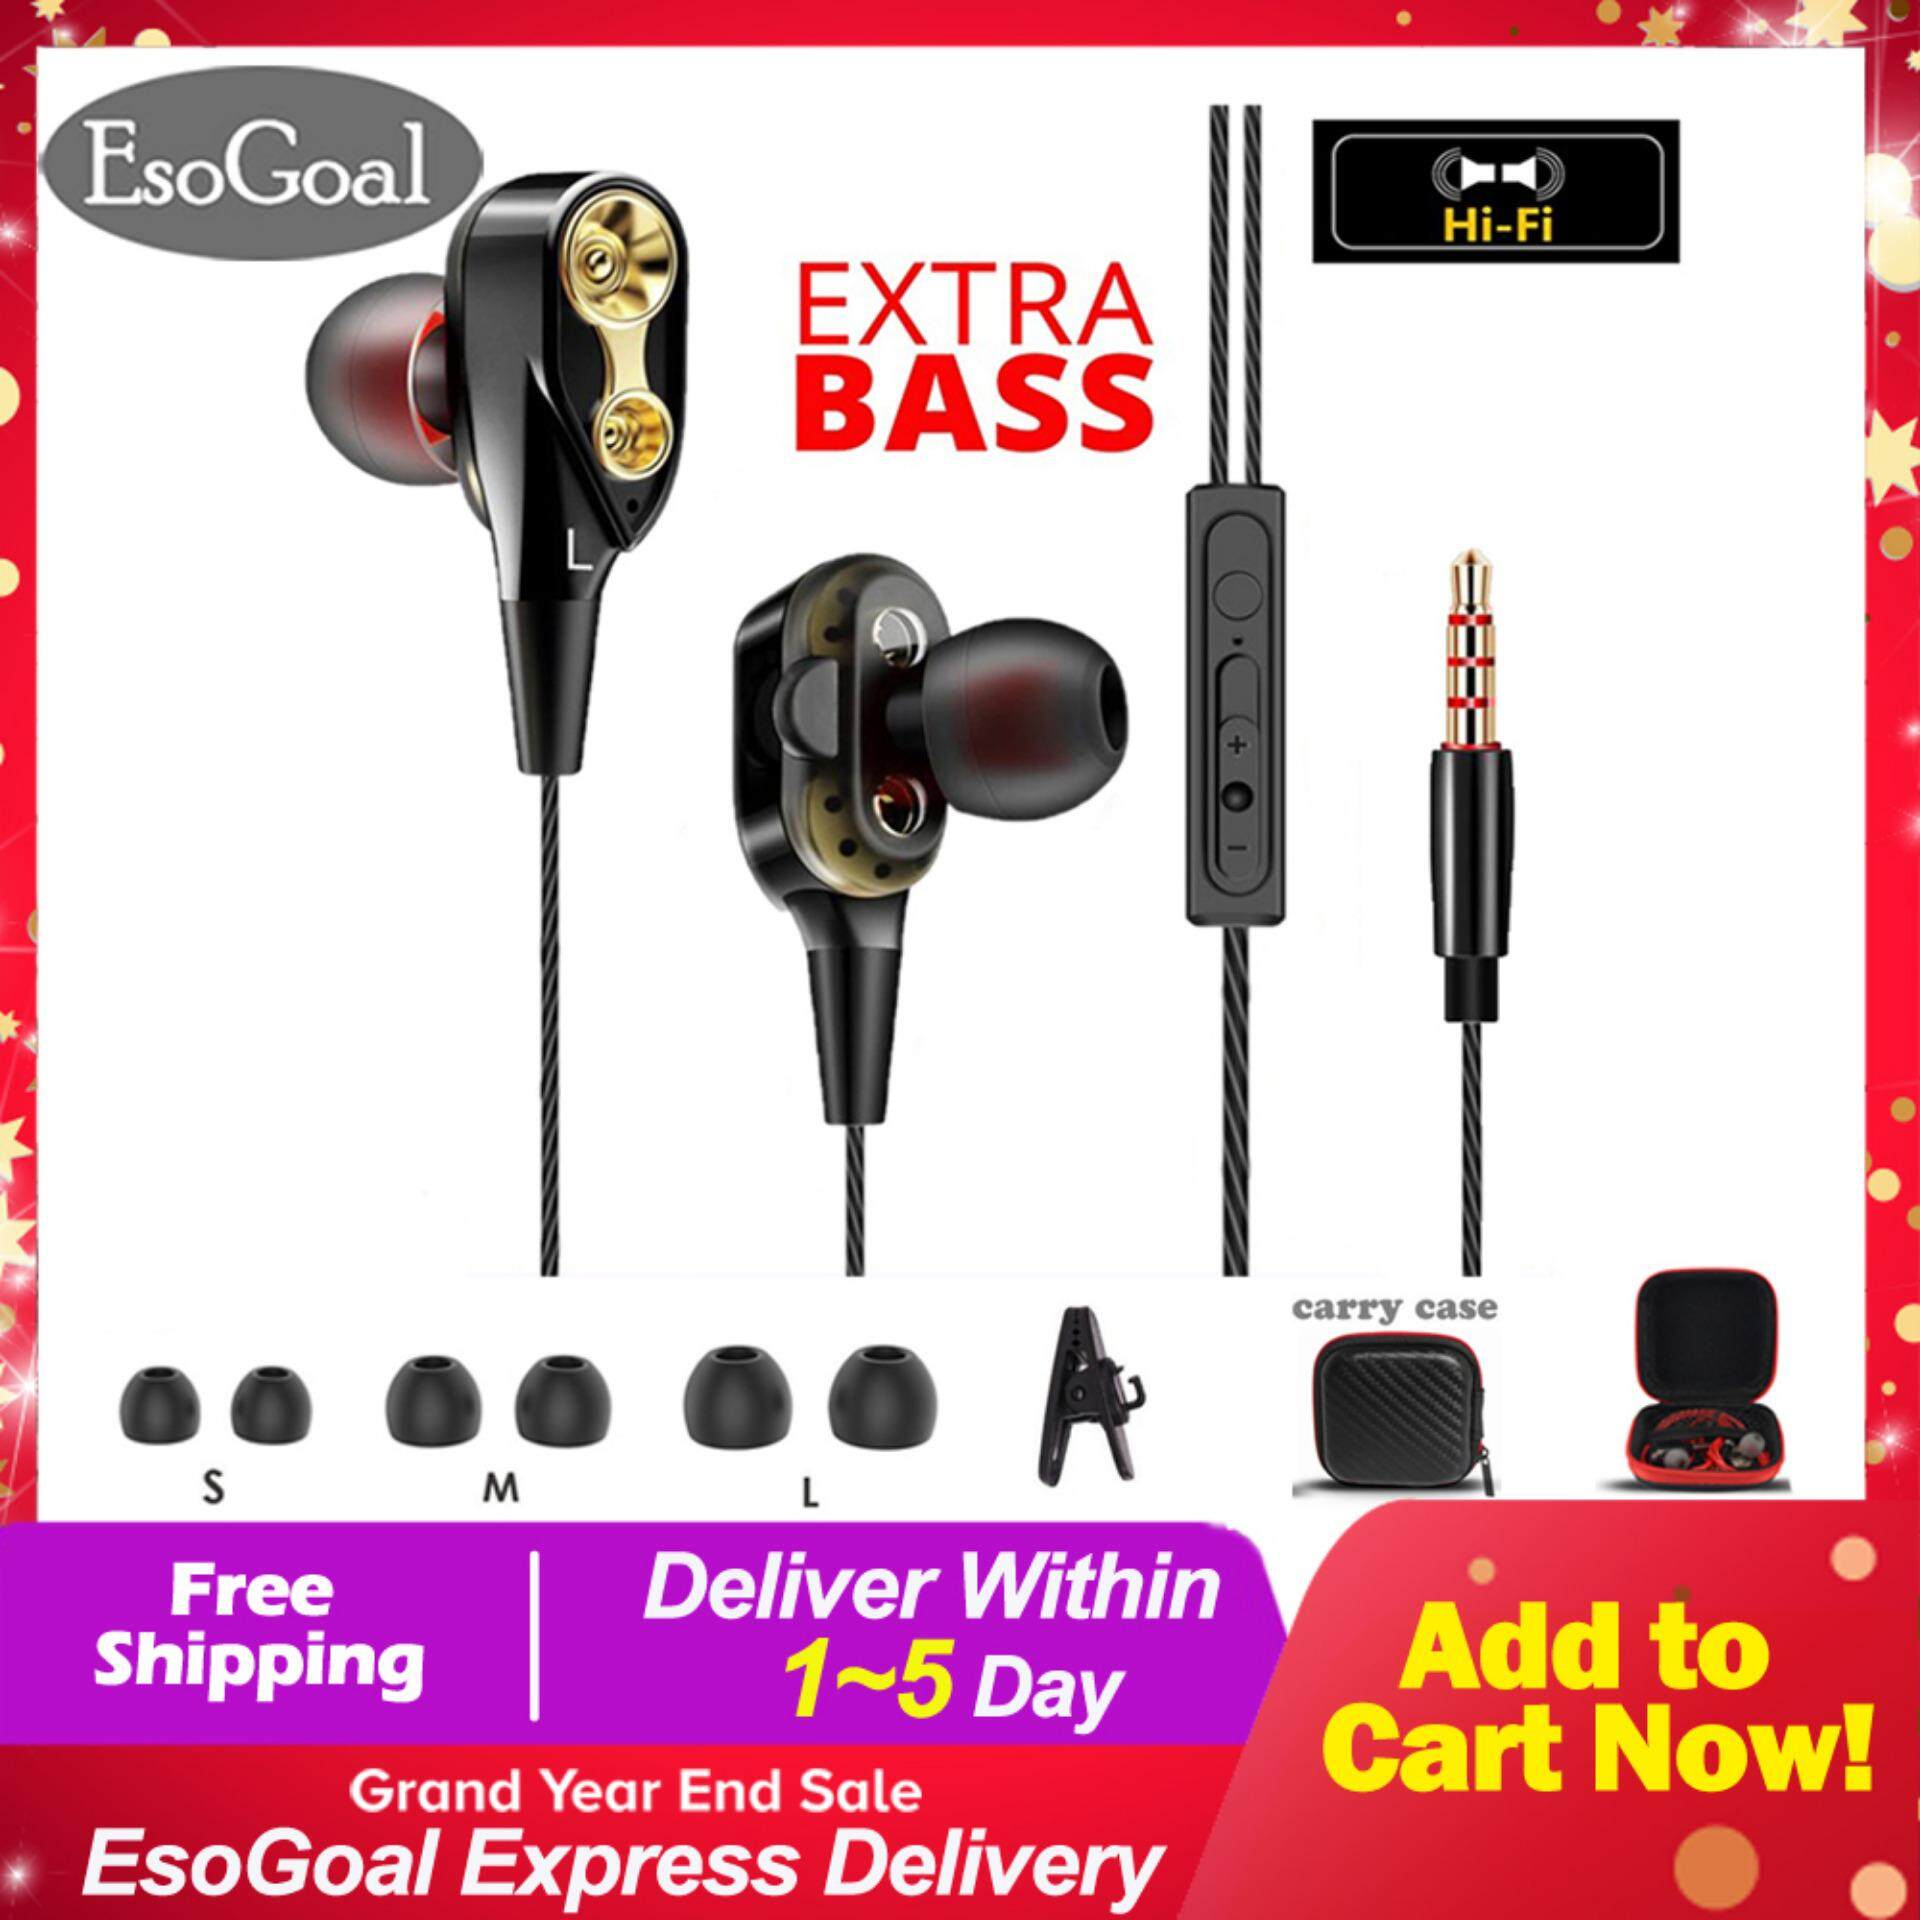 EsoGoal In-ear Earbuds Headphones Dual Dynamic Drivers Earphones with Mic Strong Bass and Noise